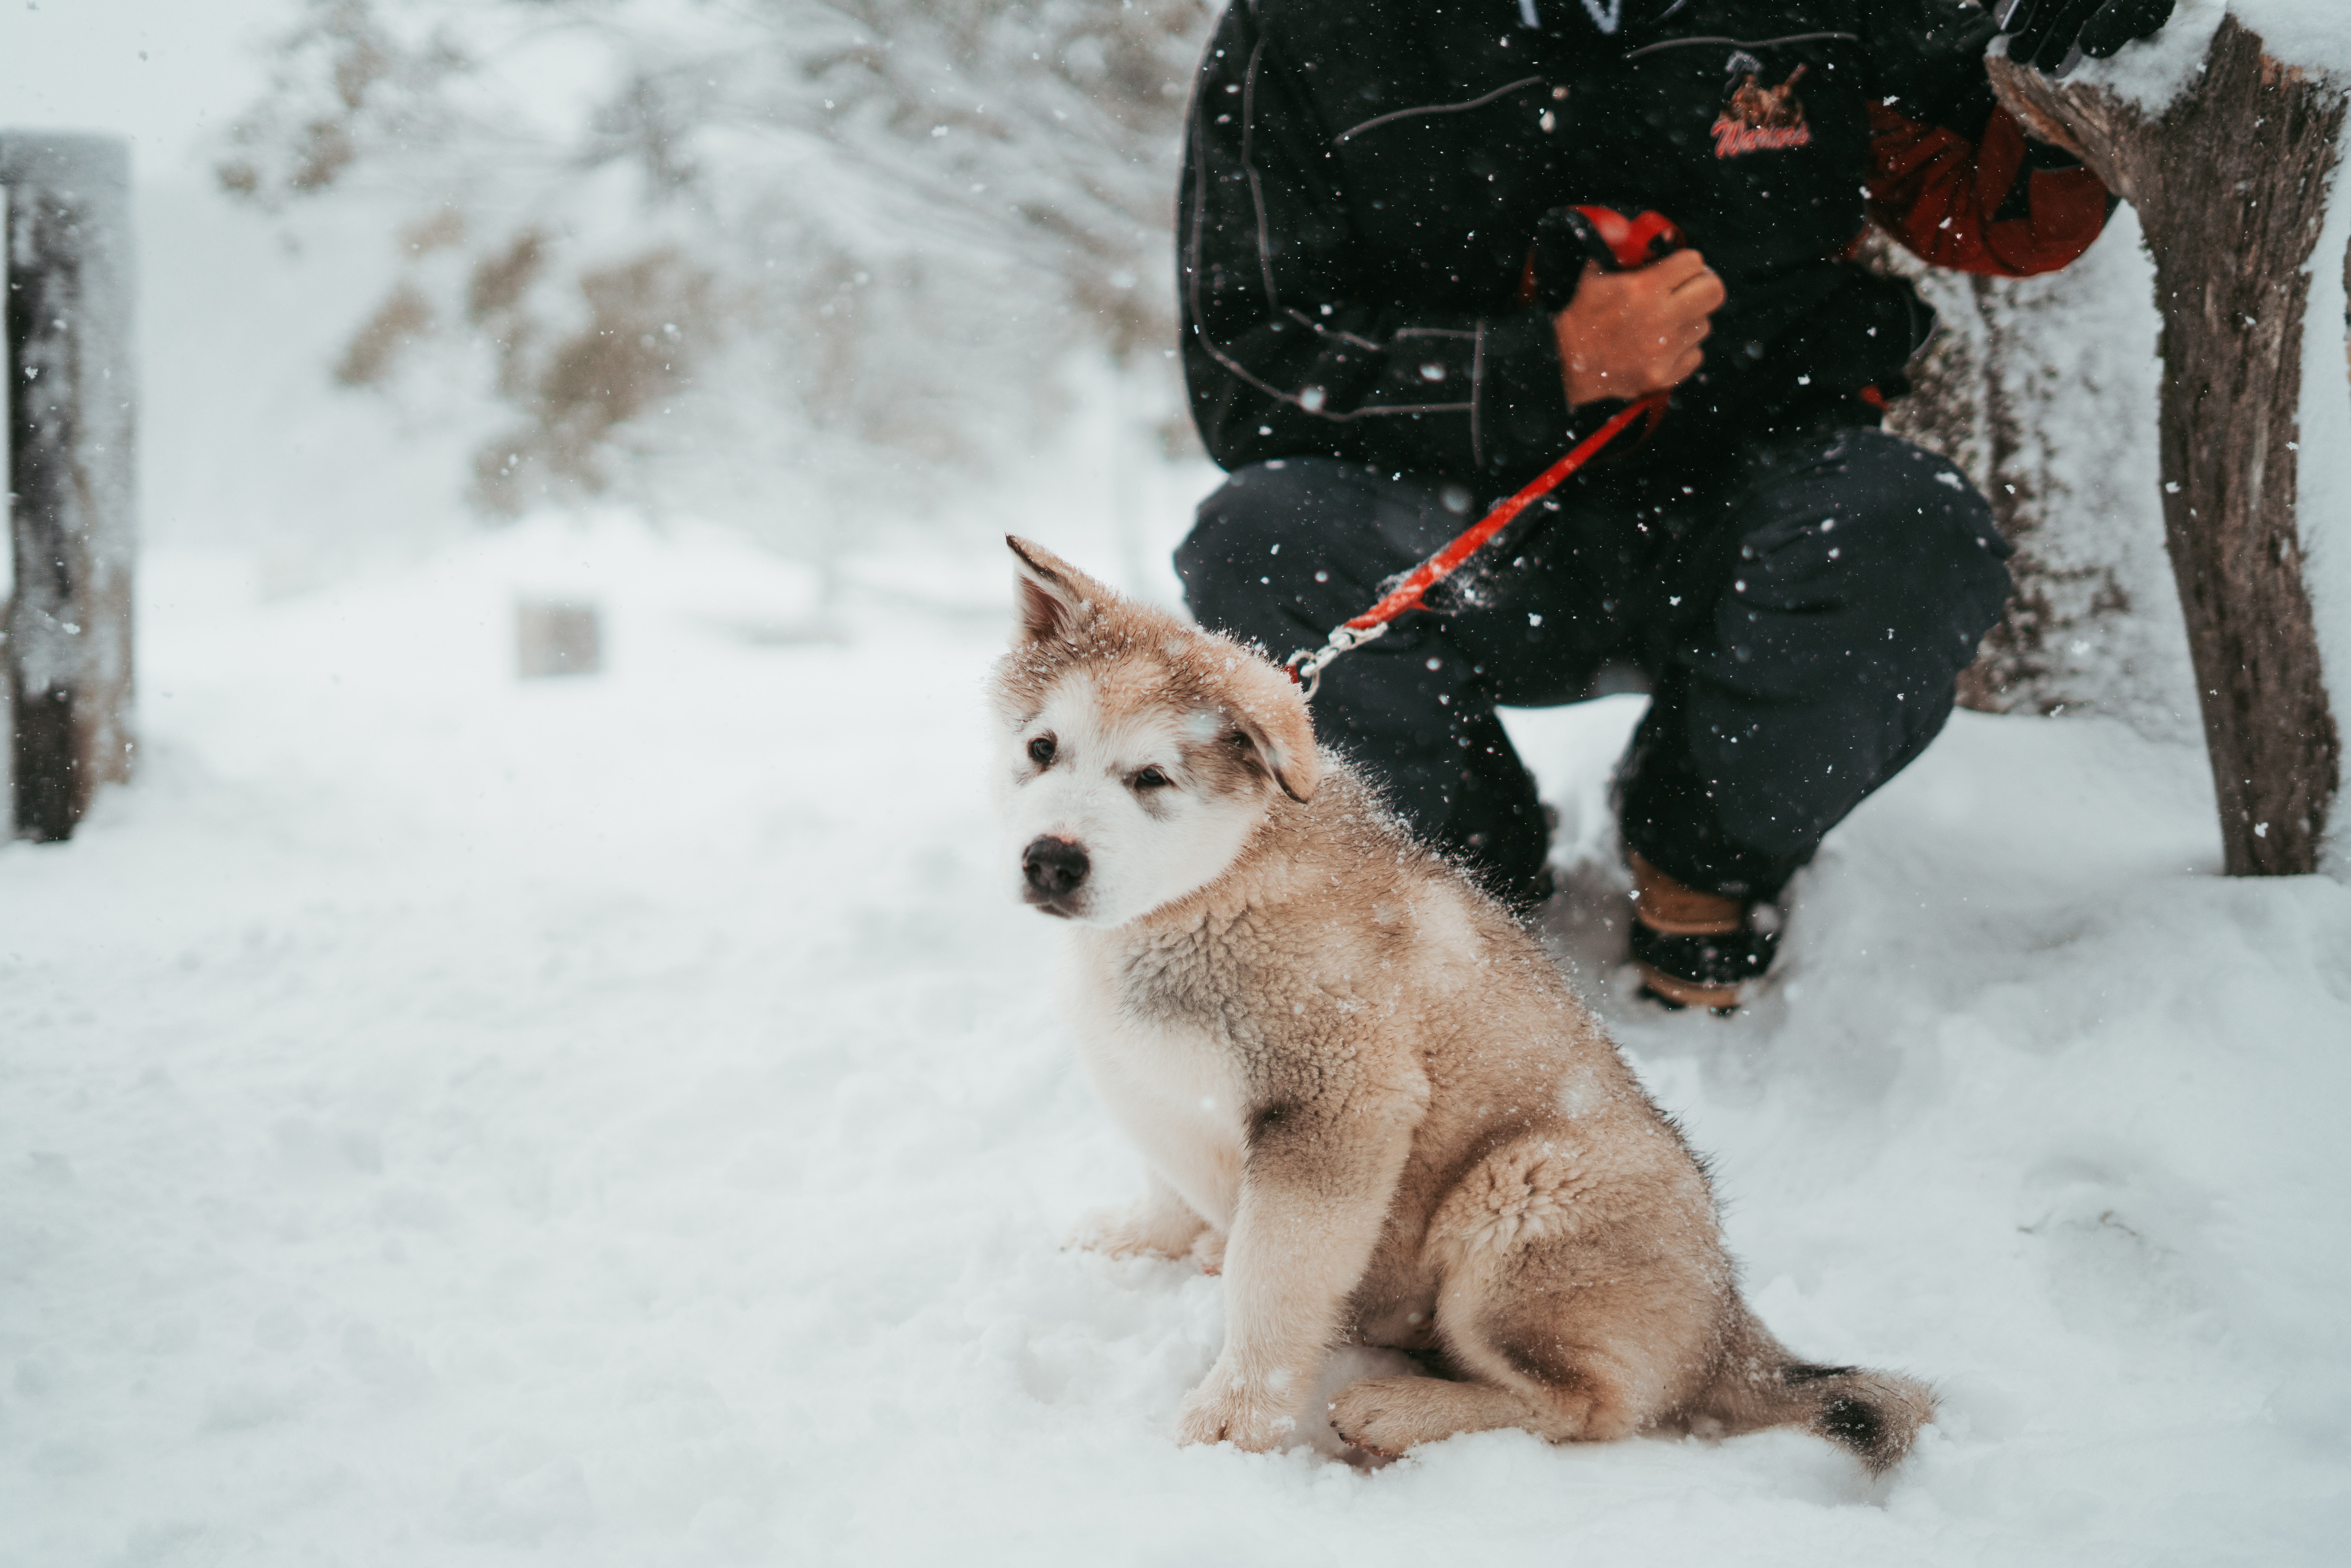 How to know when it's too cold for your dog